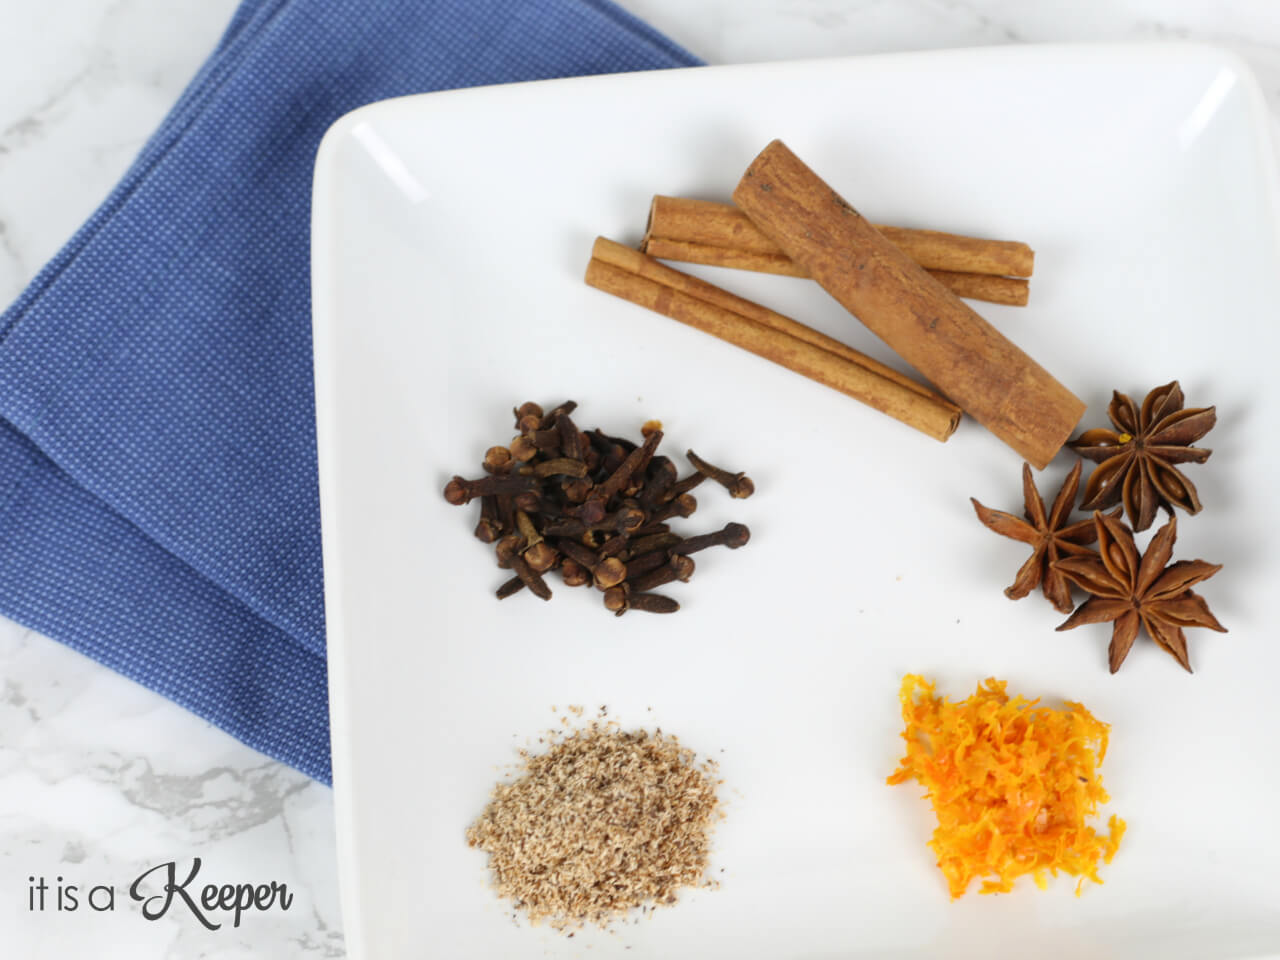 Homemade Kitchen Spice Air Freshener - this easy natural air freshener can be made in minutes and have your house smelling amazing in no time